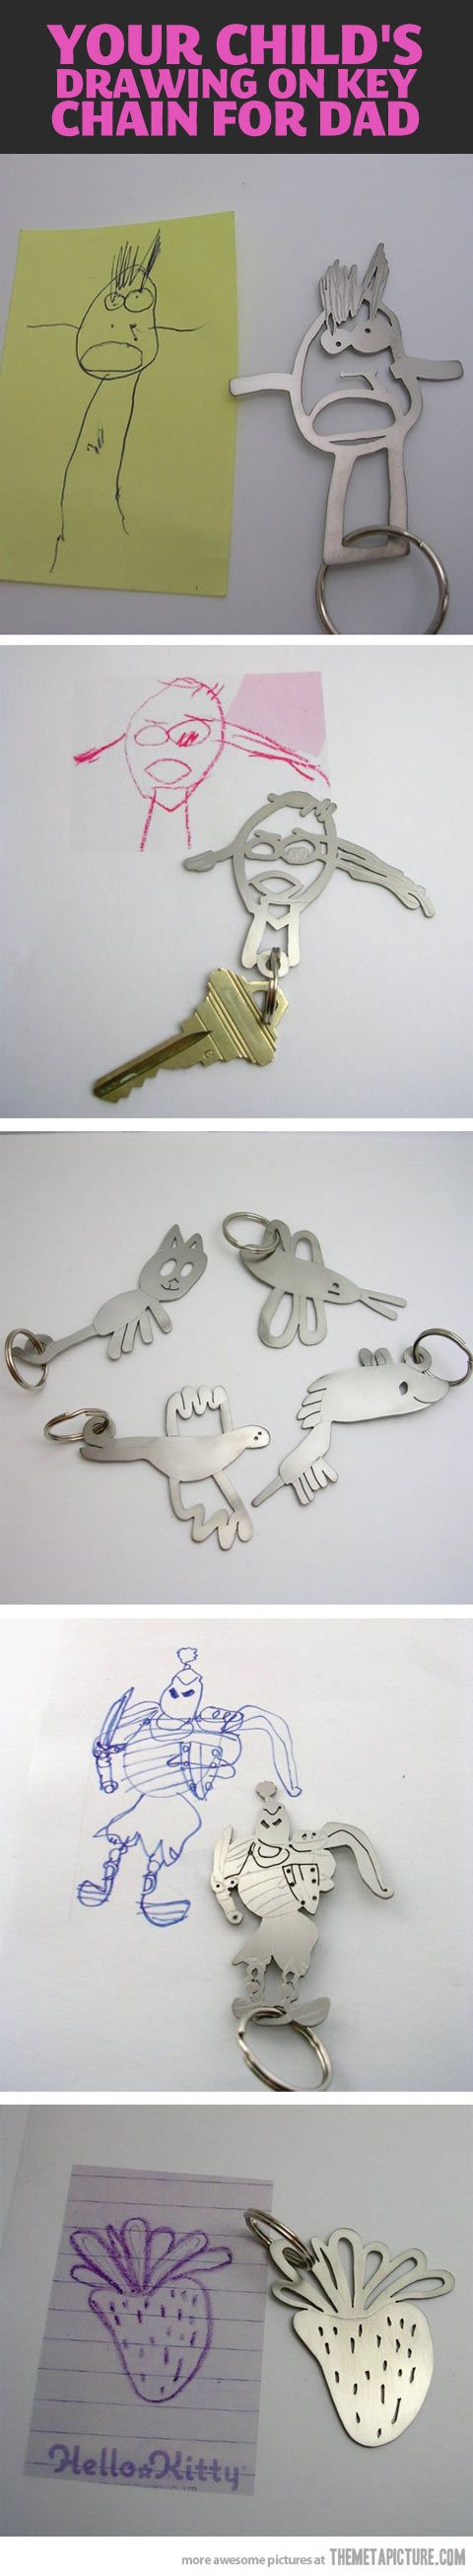 Kids' drawings made into keychains, charms, etc. ~ cute